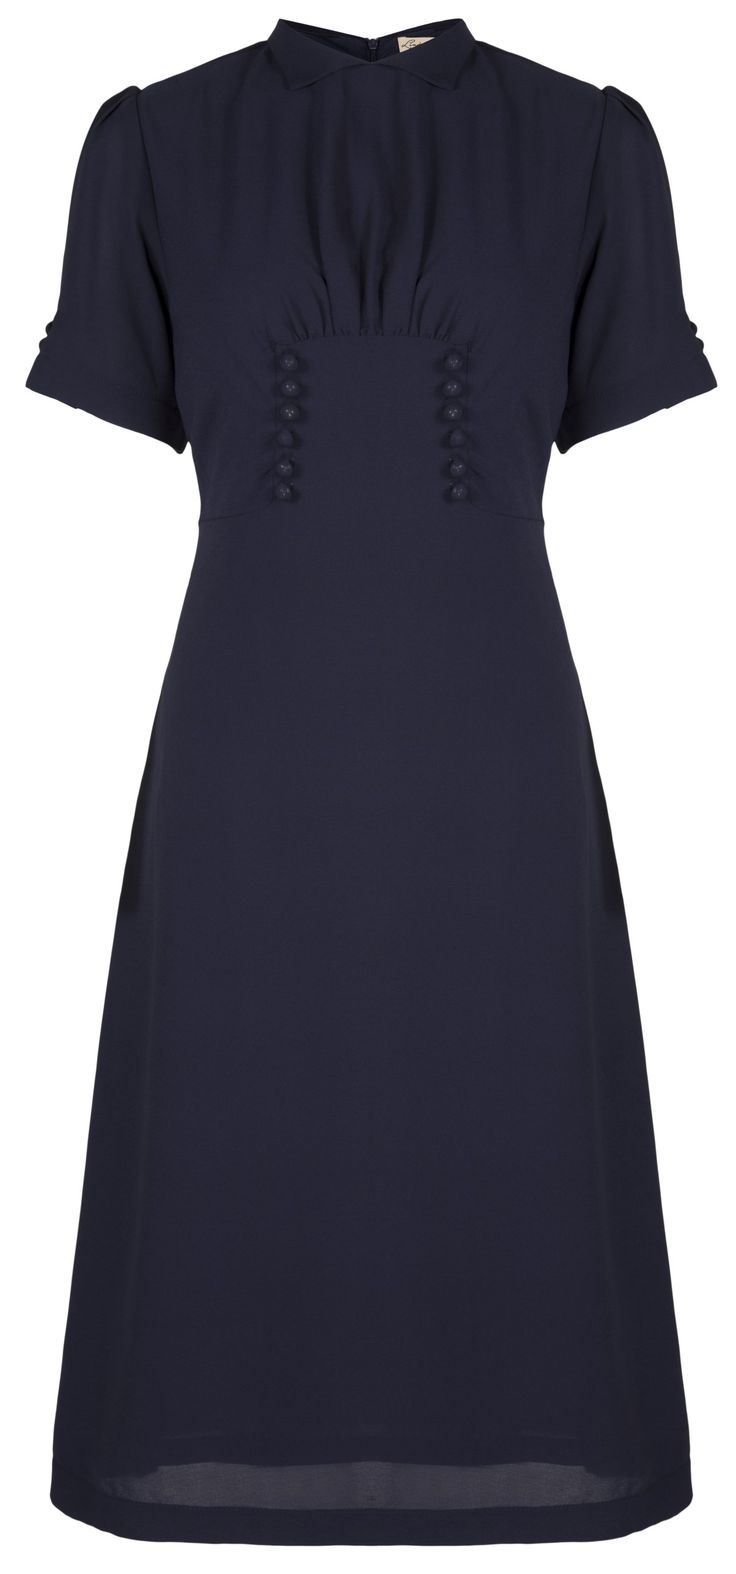 Lindy Bop 'Amelia' Vintage WW2 1940's Landgirl Tea Dress (XL, Navy Blue)